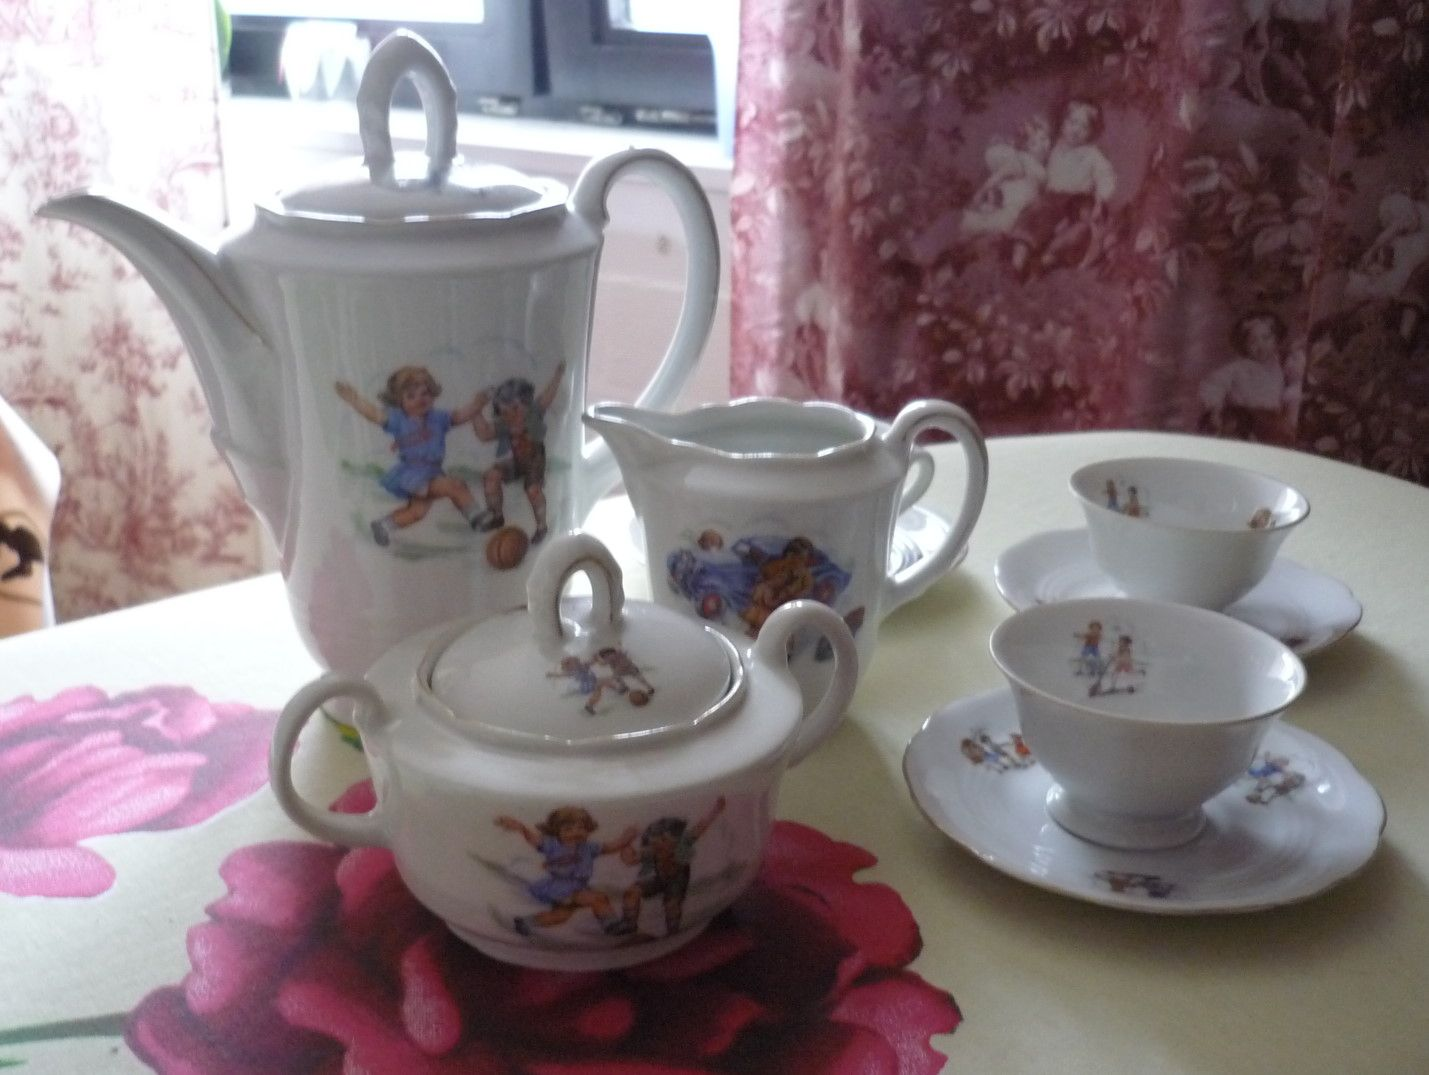 Kinder puppen service kaffee teeservice pinterest for Geschirr set vintage